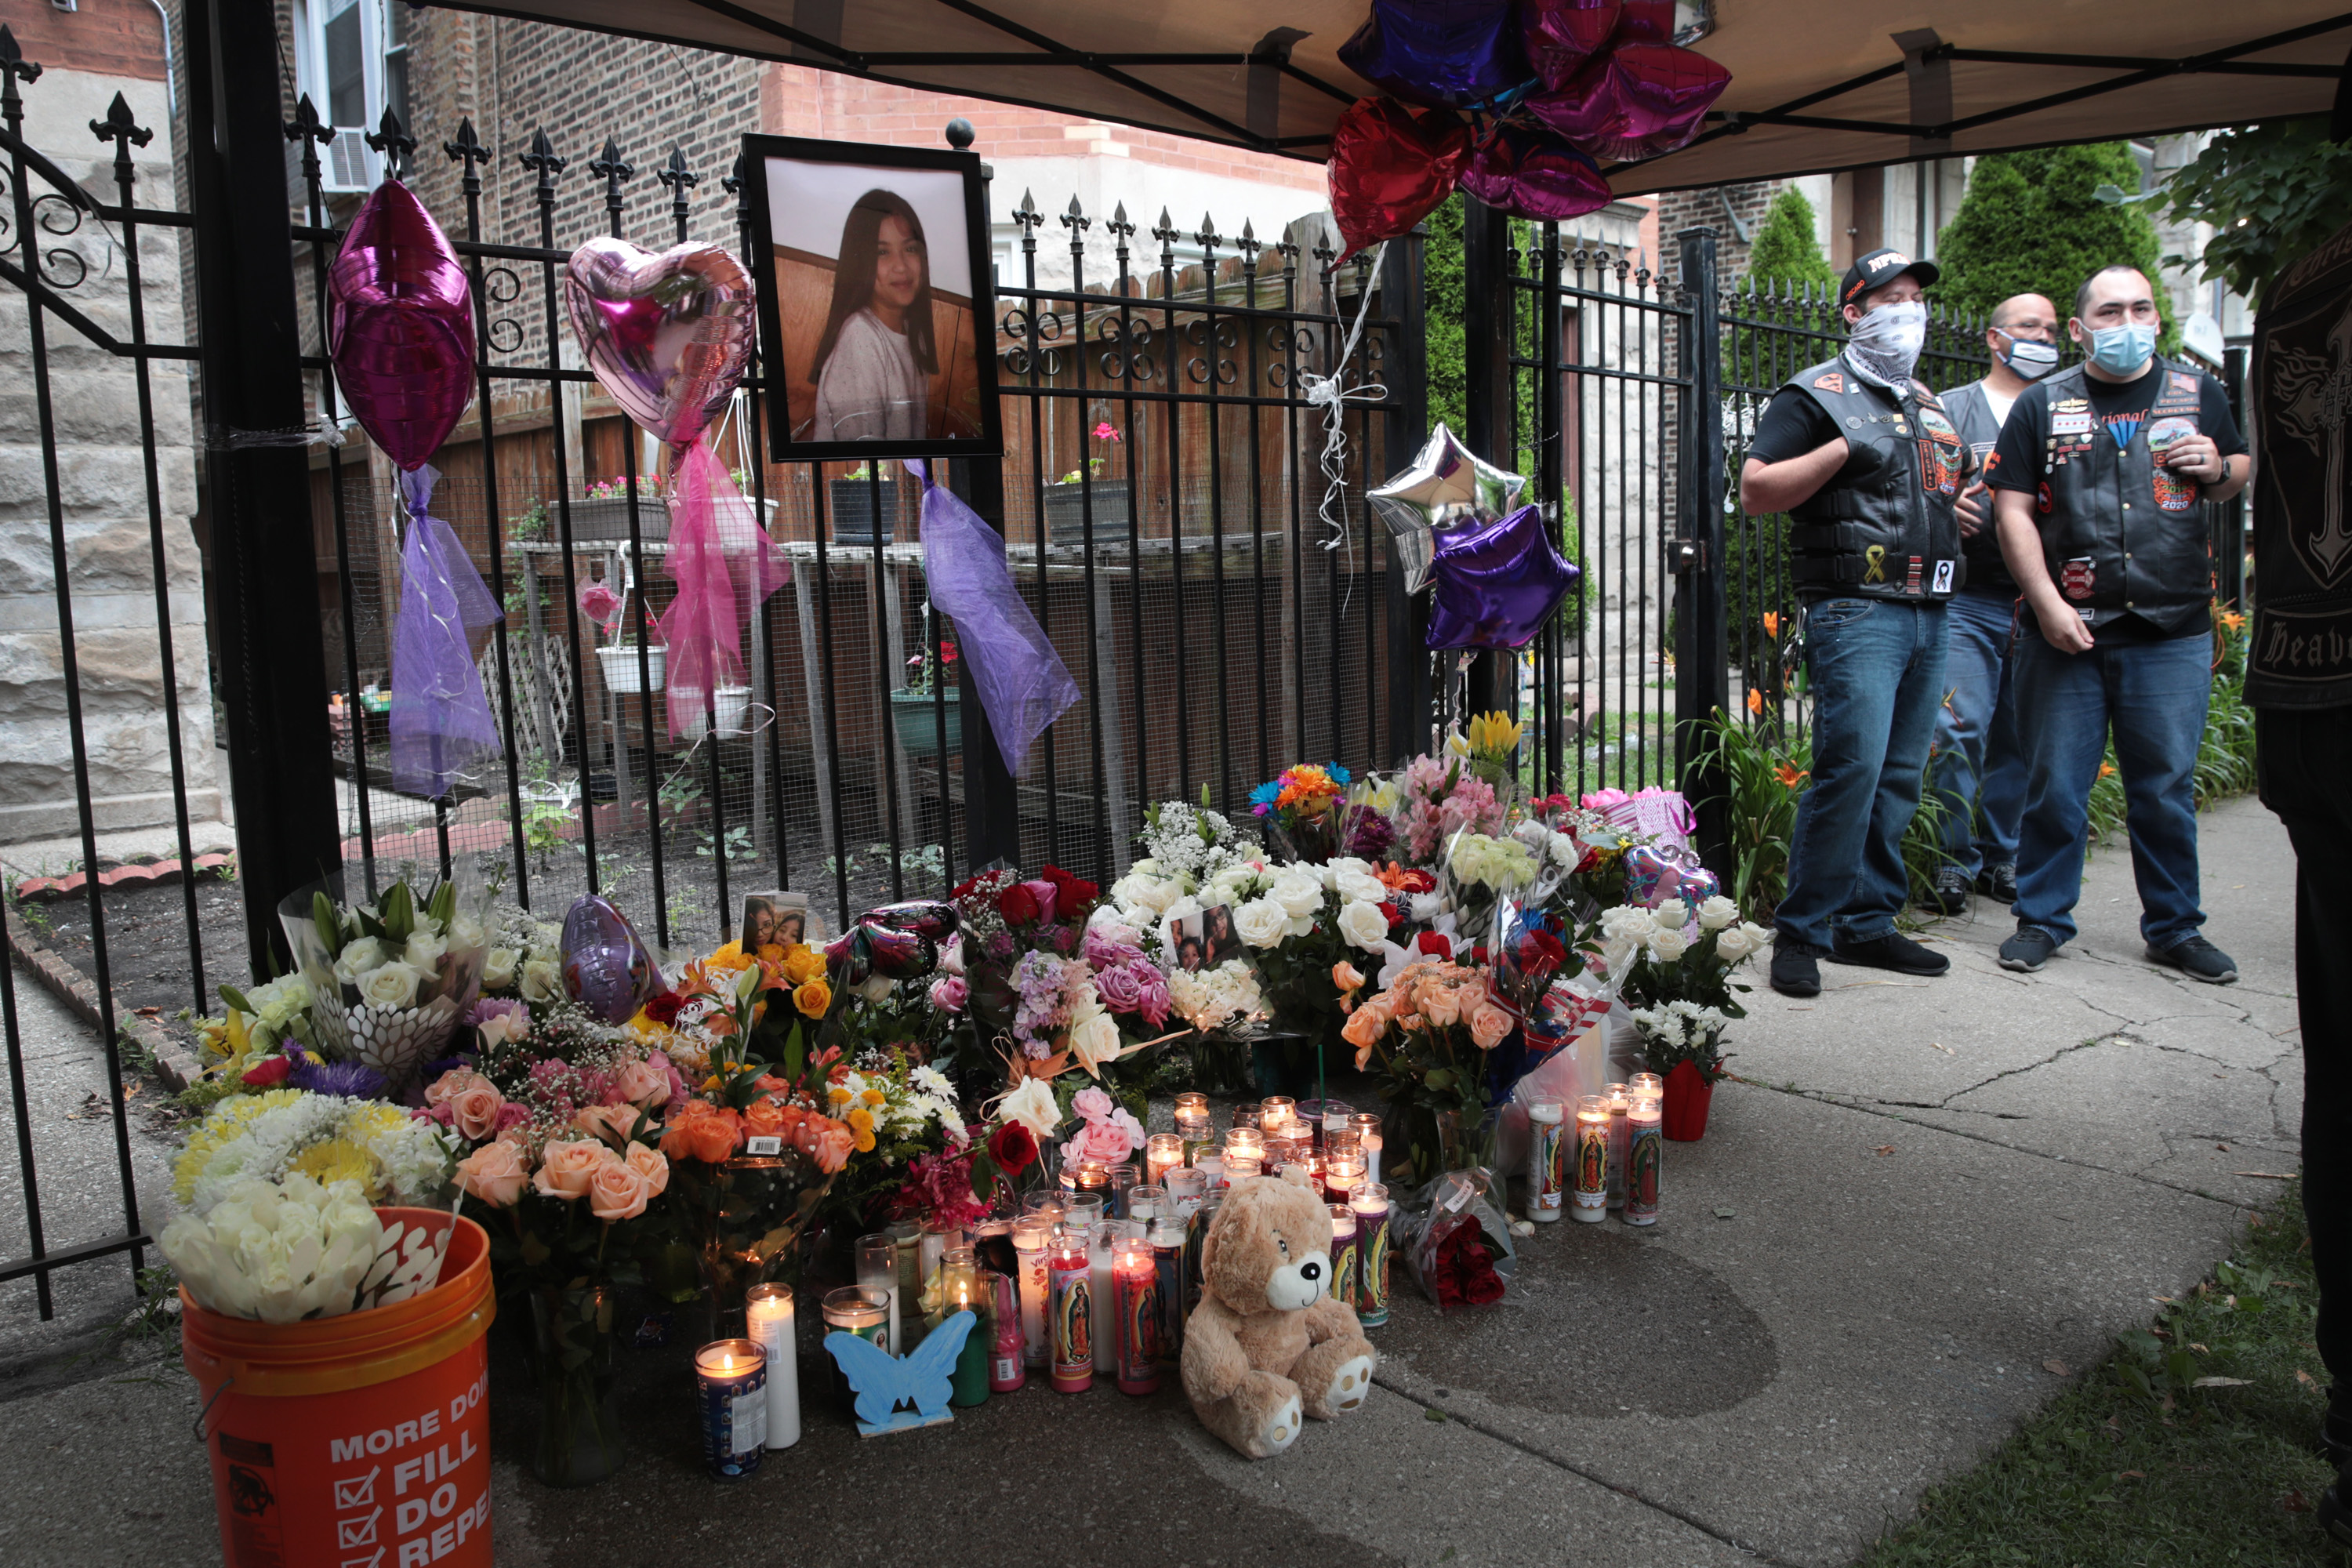 Candles burn in front of a memorial for for 10-year-old Lena Nunez on June 29, 2020 in Chicago, Illinois. Nunez was shot and killed by a stray bullet while watching television with her brother in her grandmother's home on Saturday evening. (Photo: Scott Olson/Getty Images)